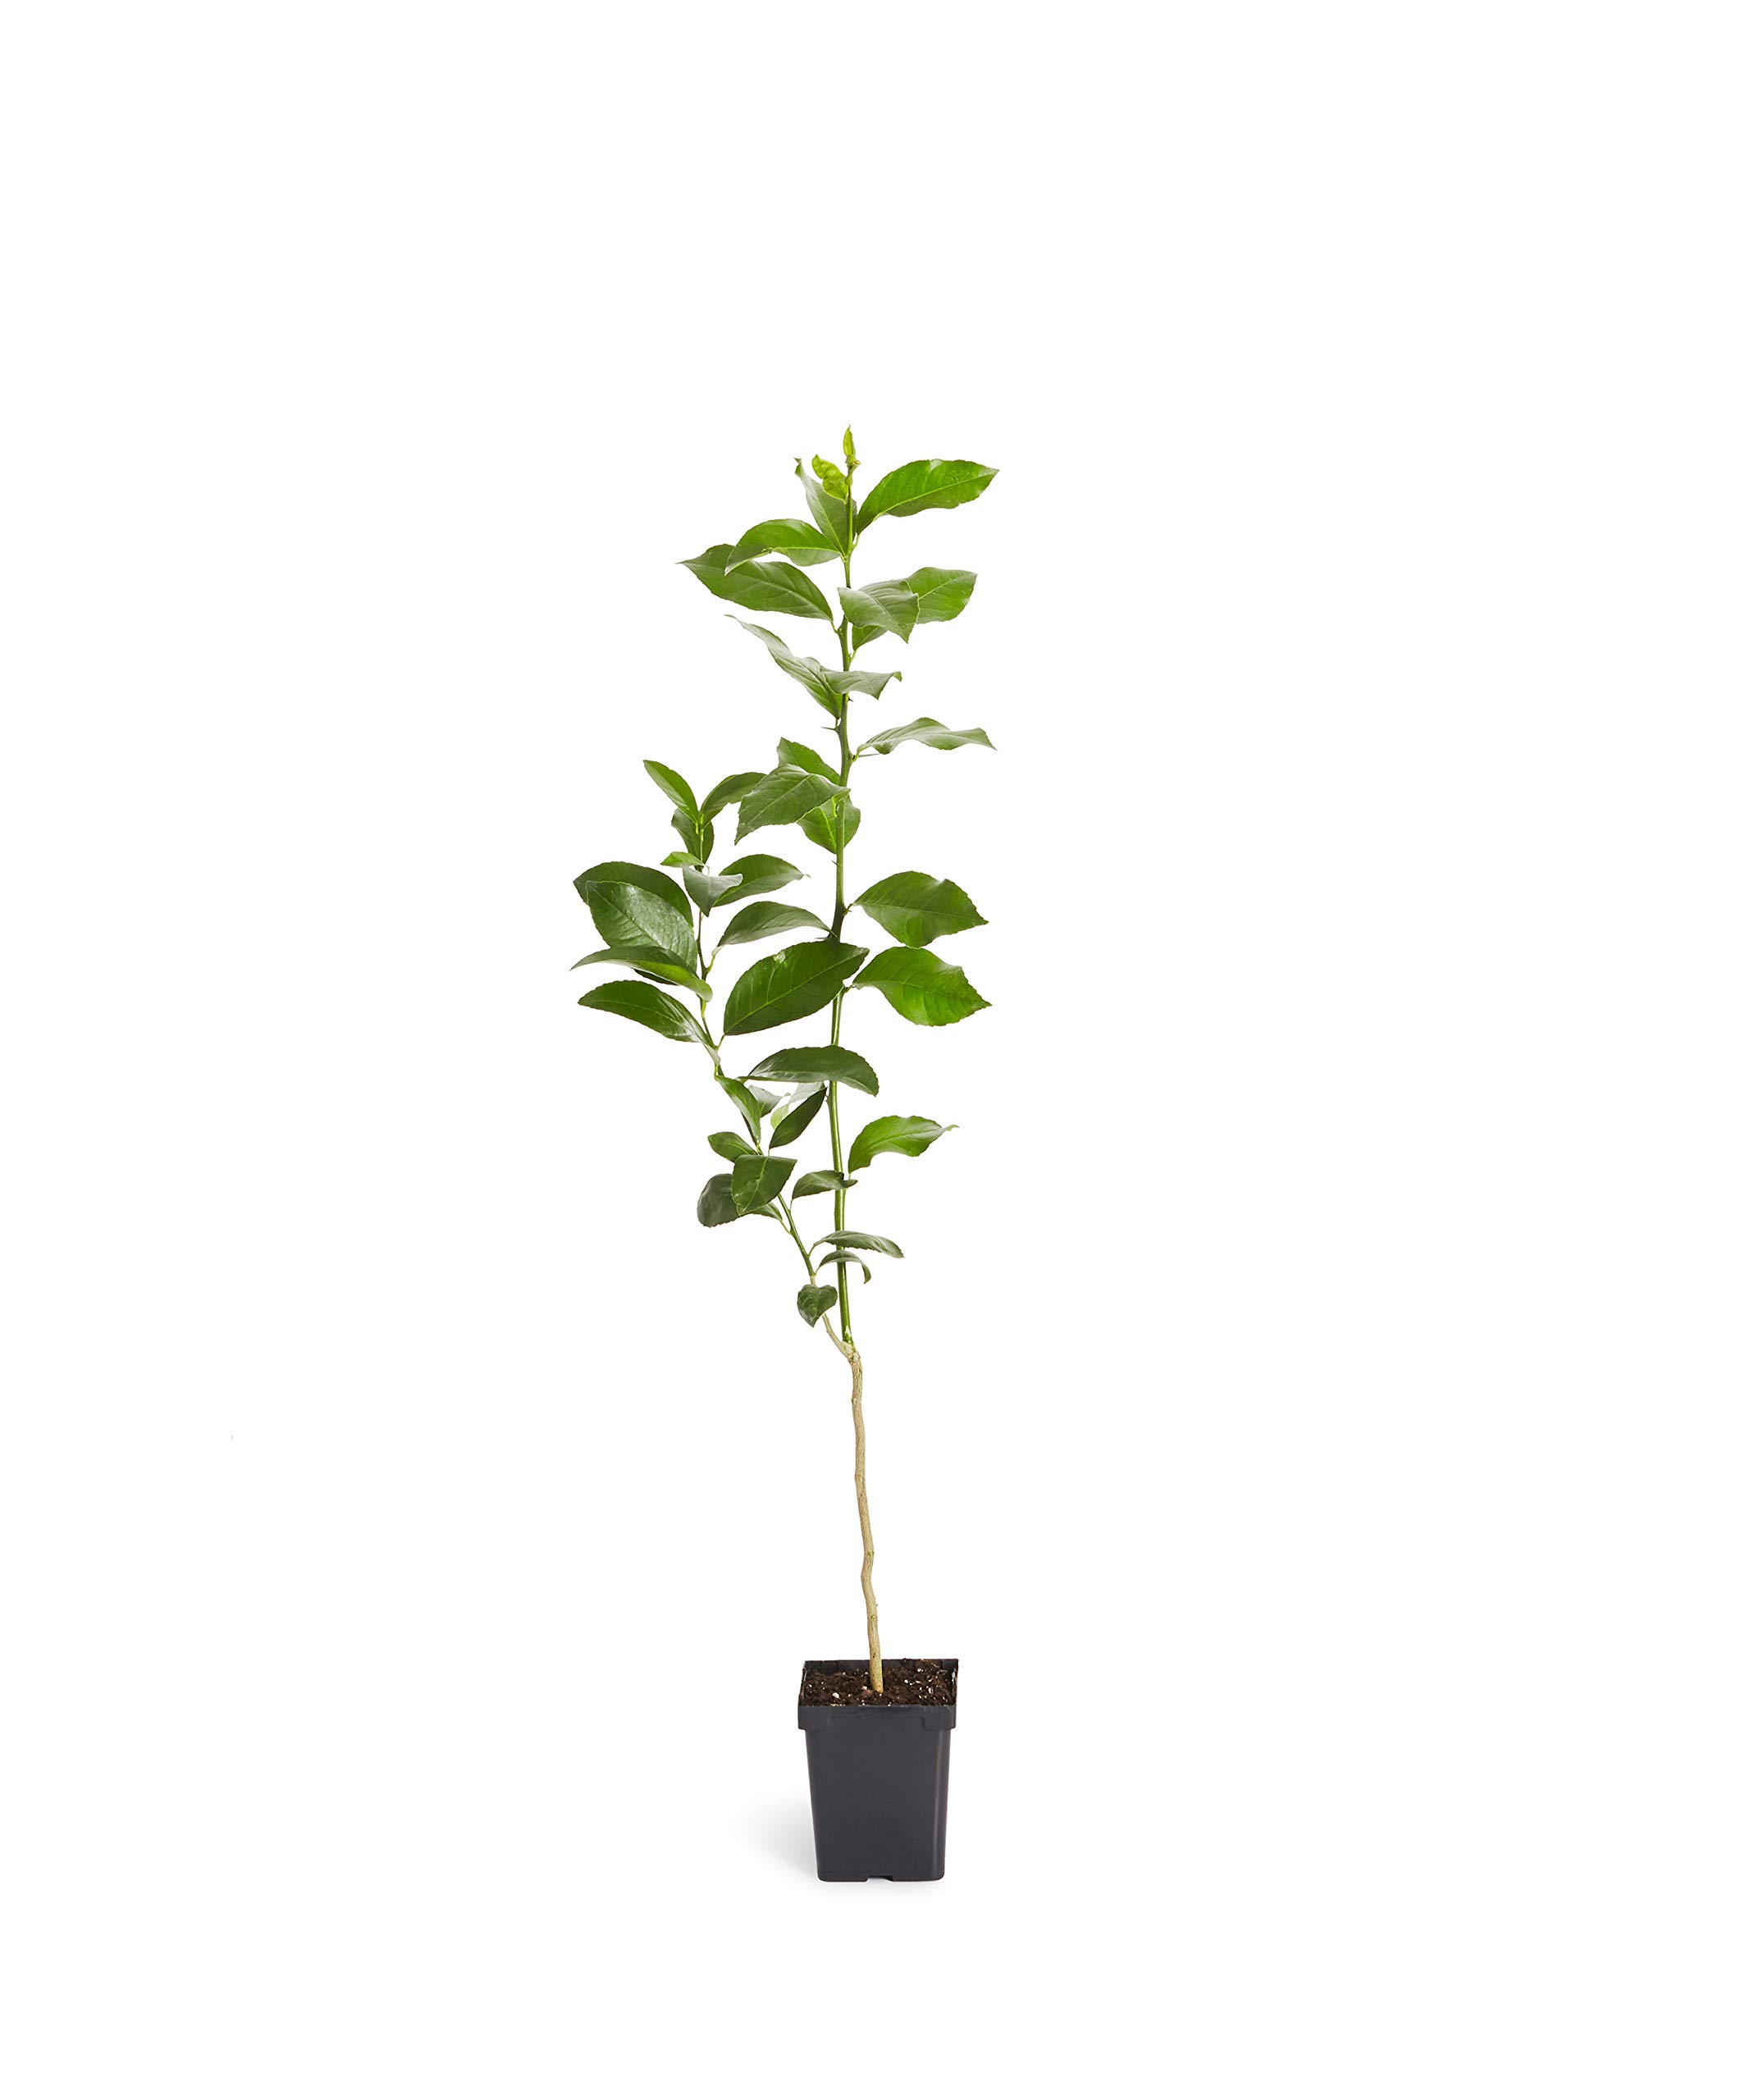 Key Lime Tree - Dwarf Fruit Trees - Indoor/Outdoor Live Potted Citrus Tree - 1-2 ft. Tall Trees - Cannot Ship to FL, CA, TX, LA or AZ by Brighter Blooms (Image #1)